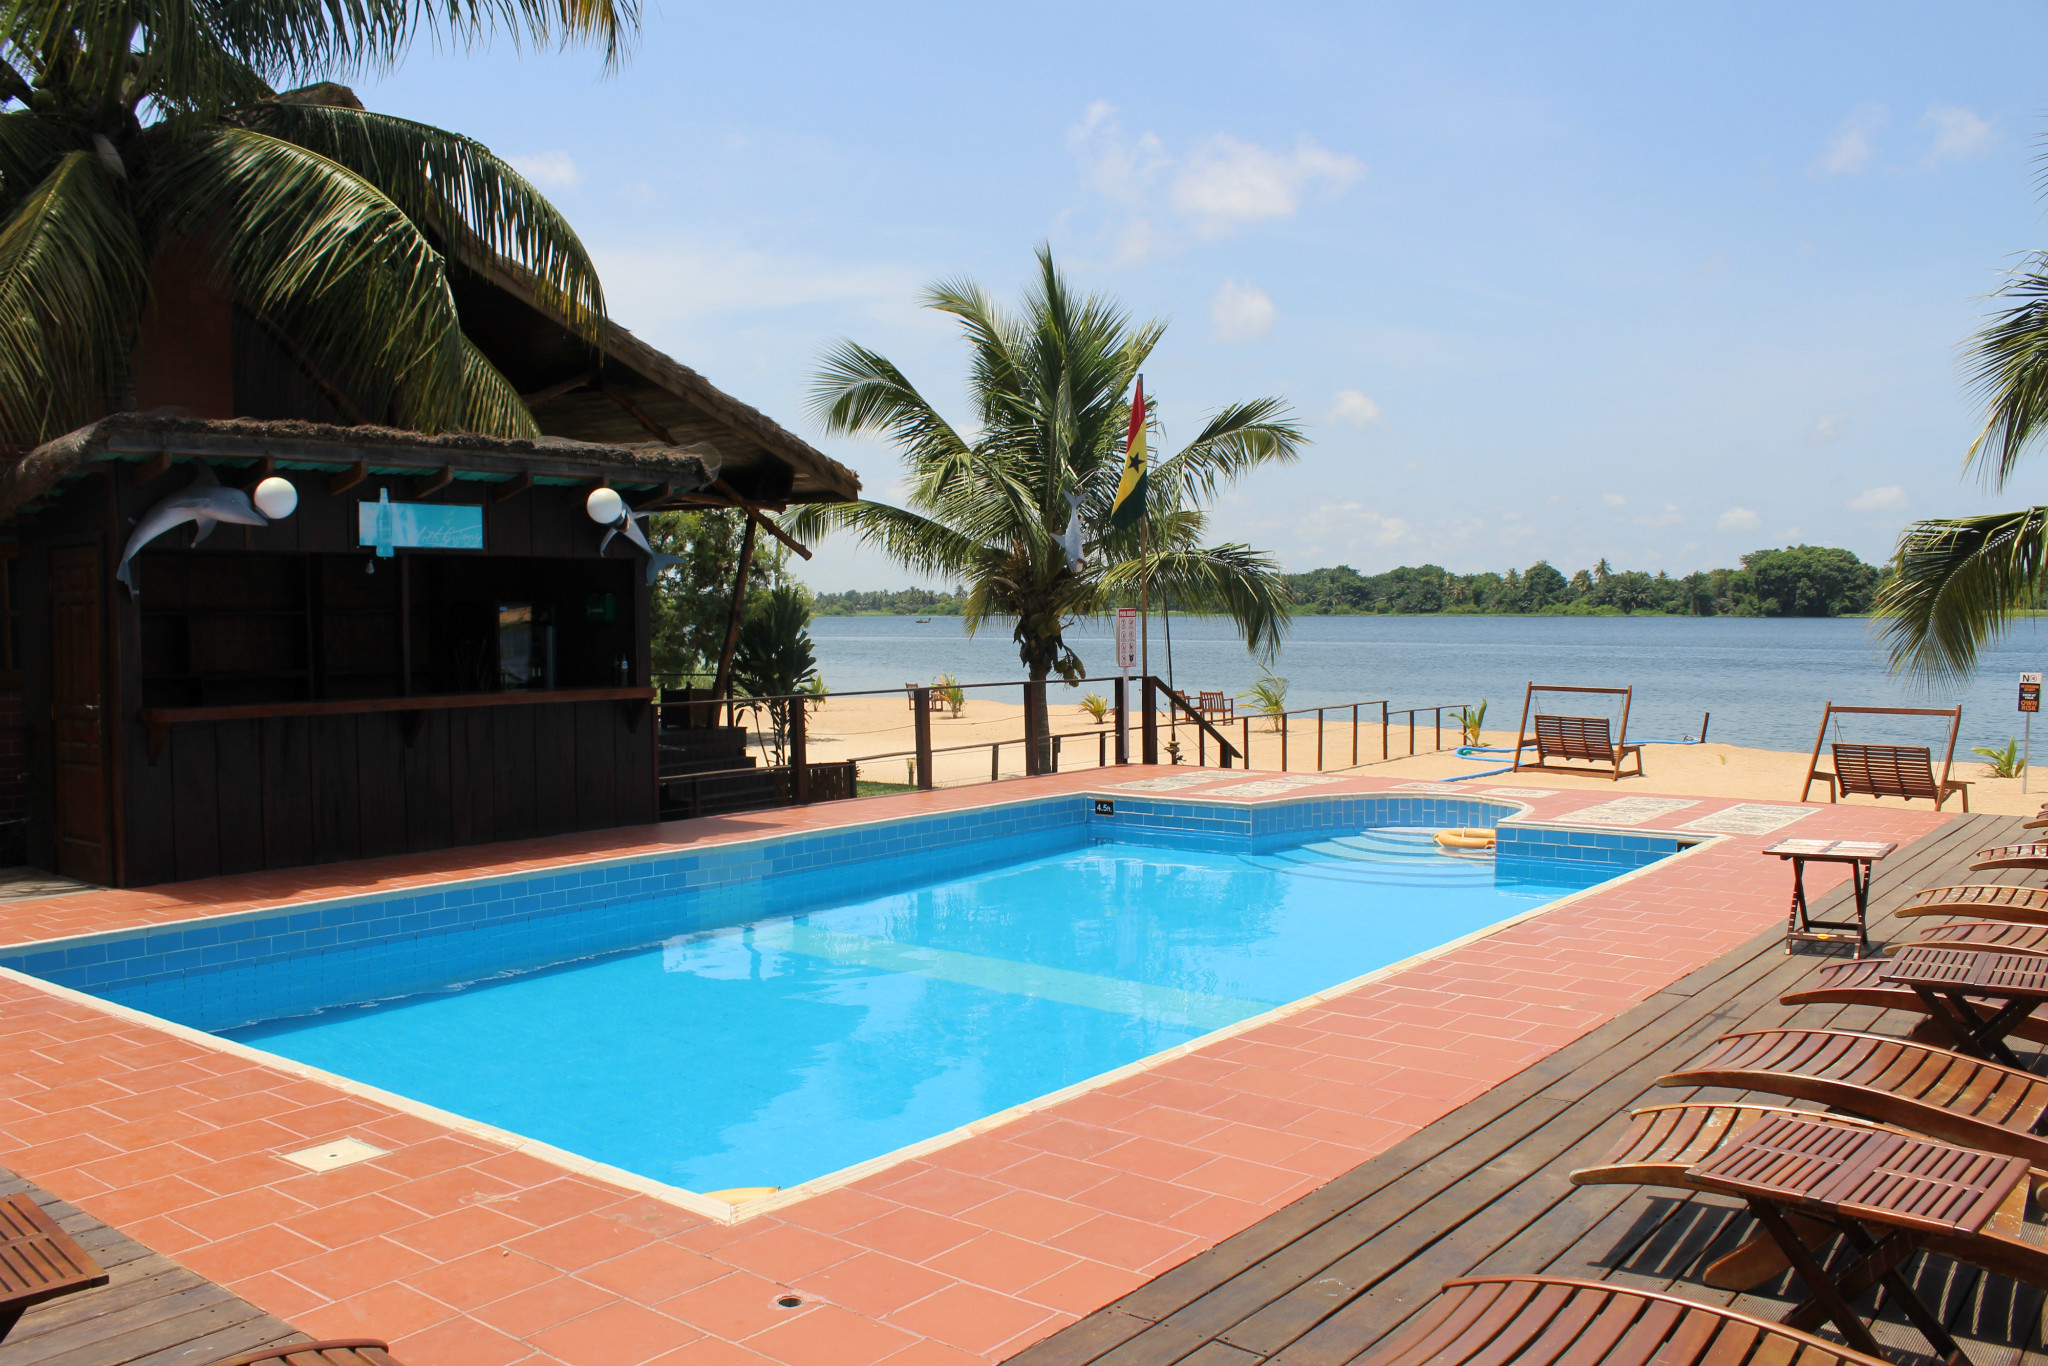 Slow down your pace at Aqua Safari Resort